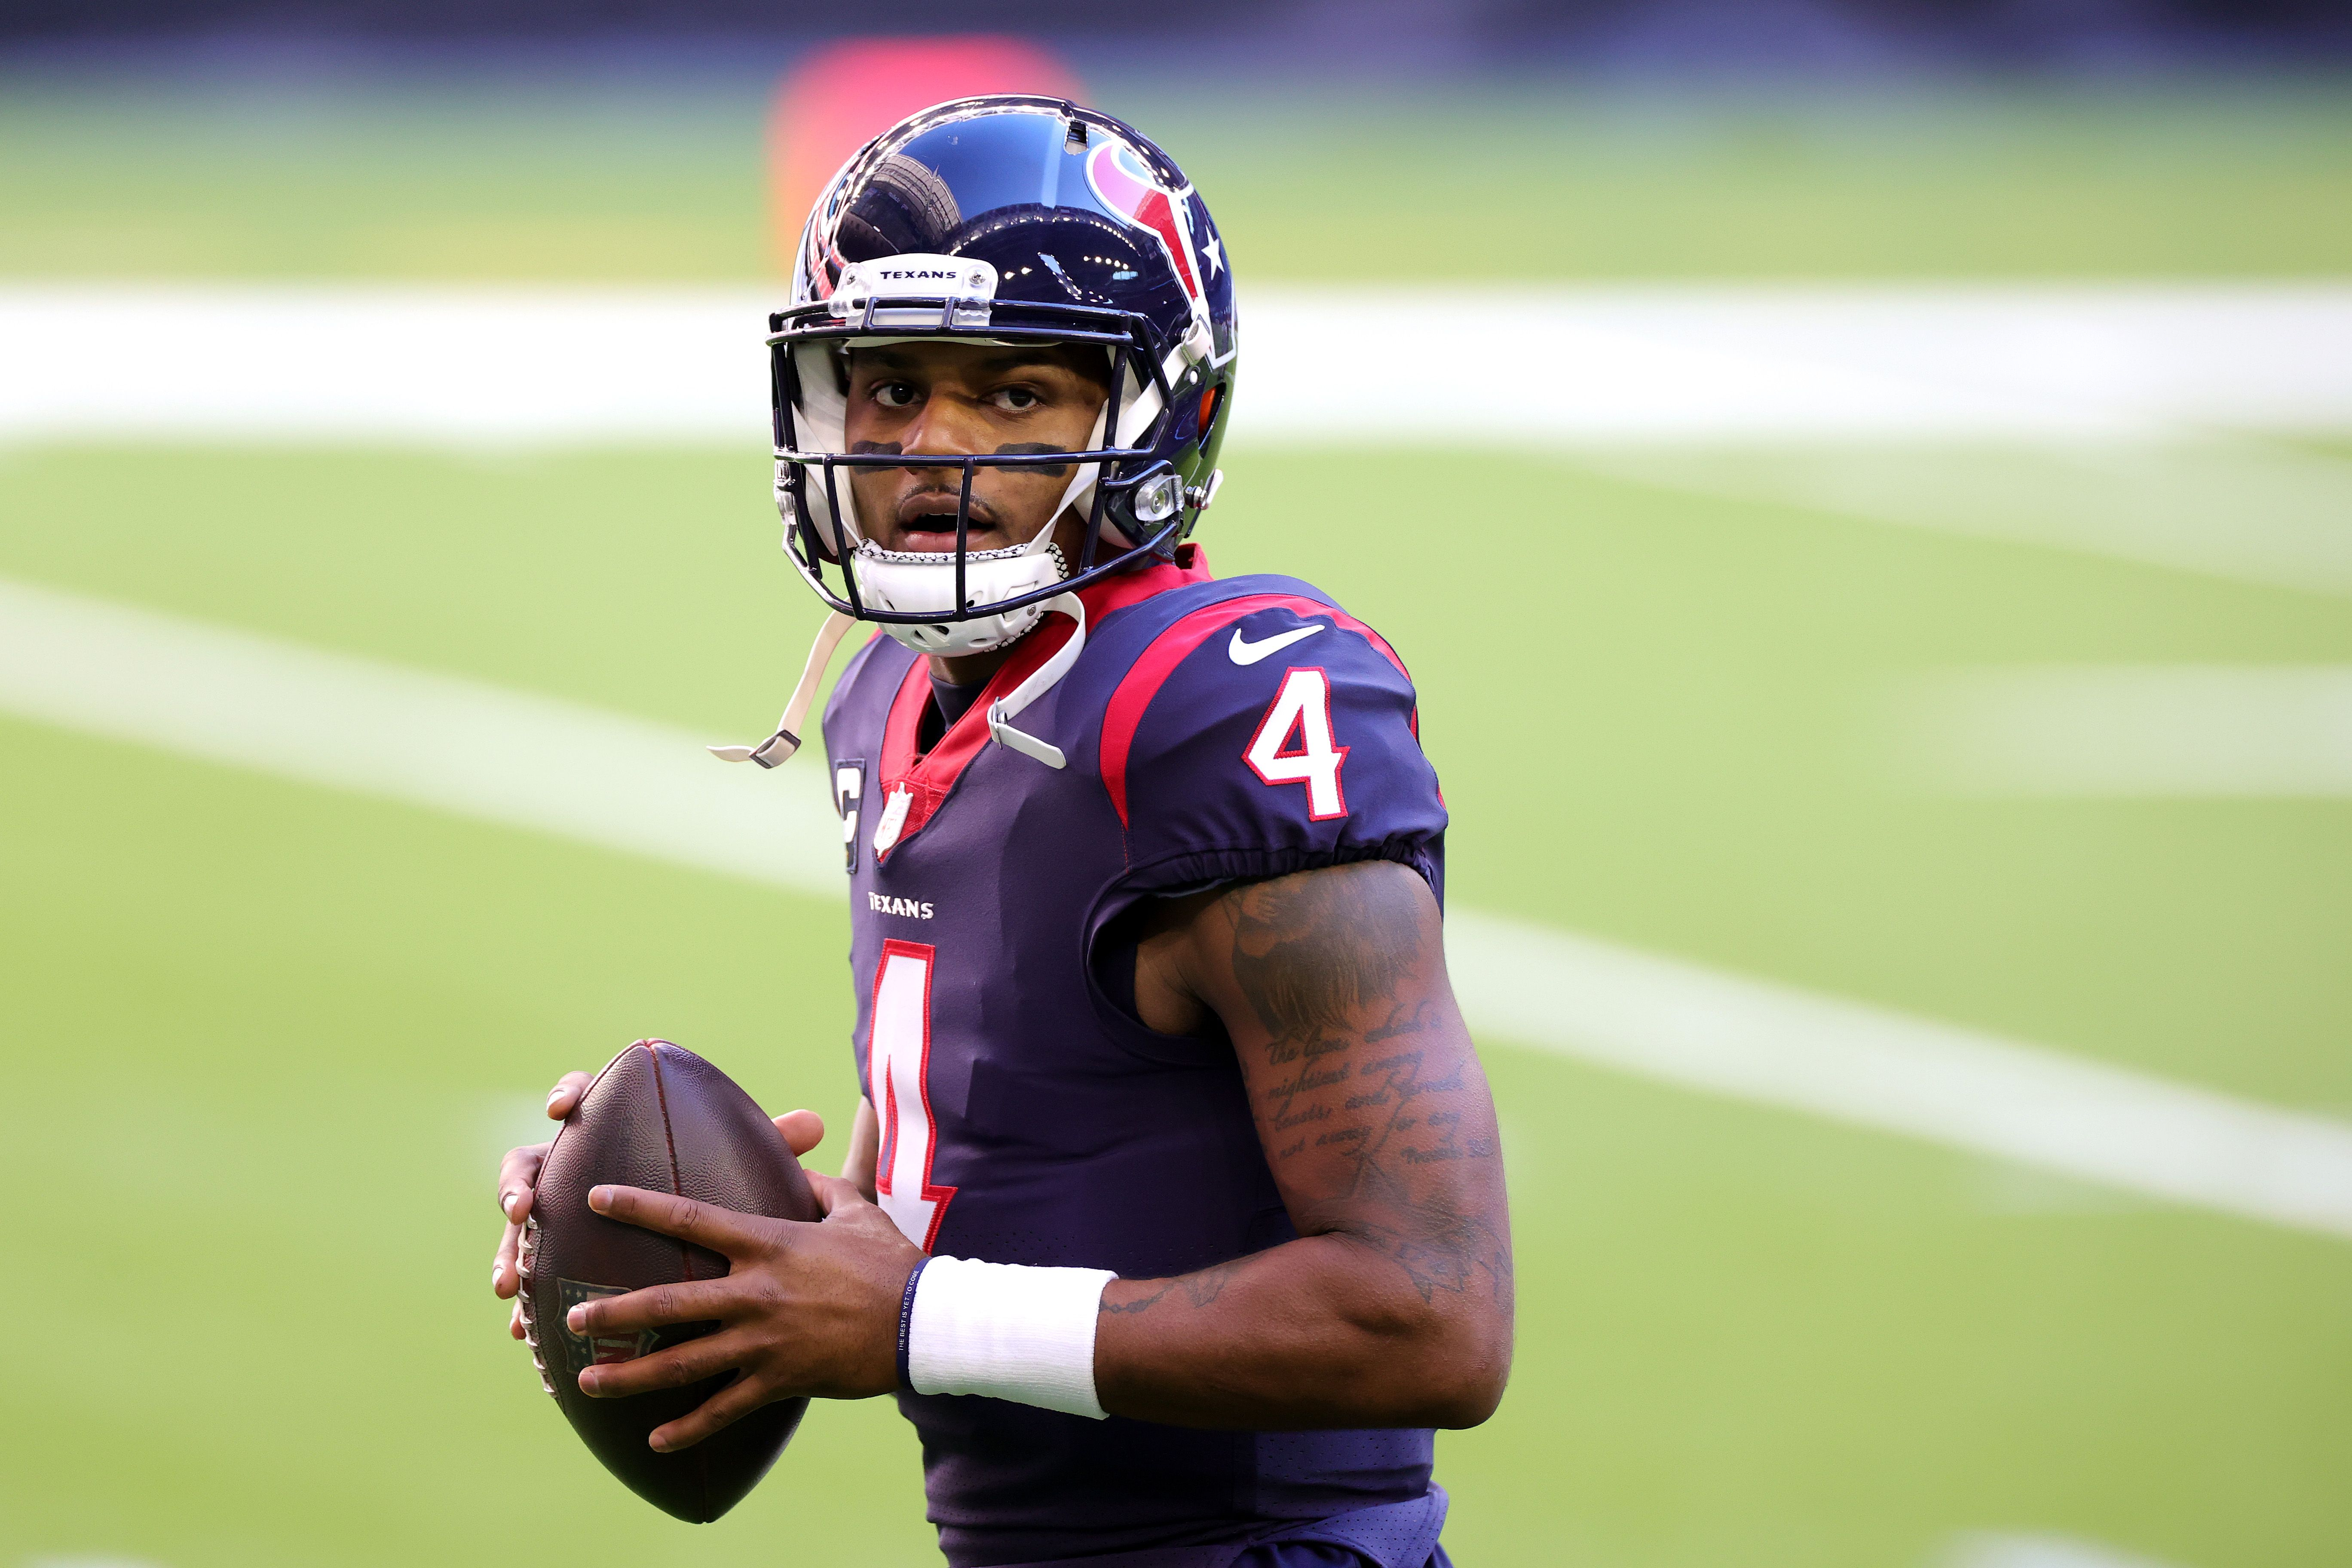 Deshaun Watson practices before an NFL game.